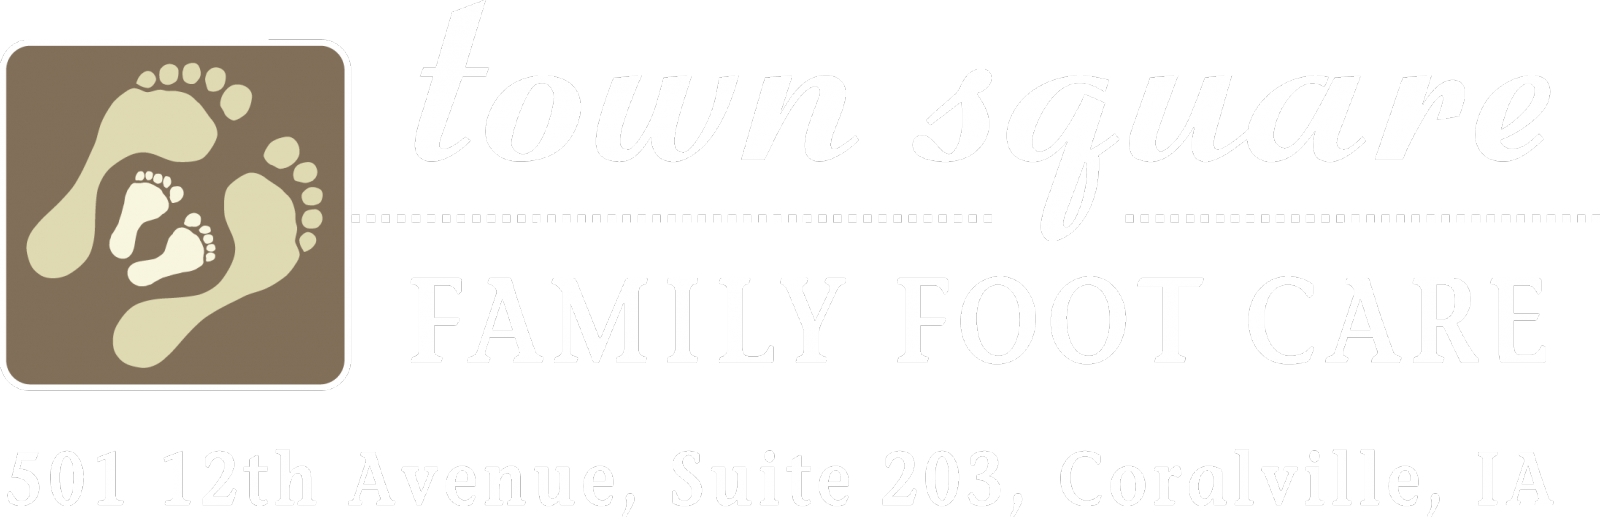 Coralville Podiatrist - Town Square Family Foot Care - Foot